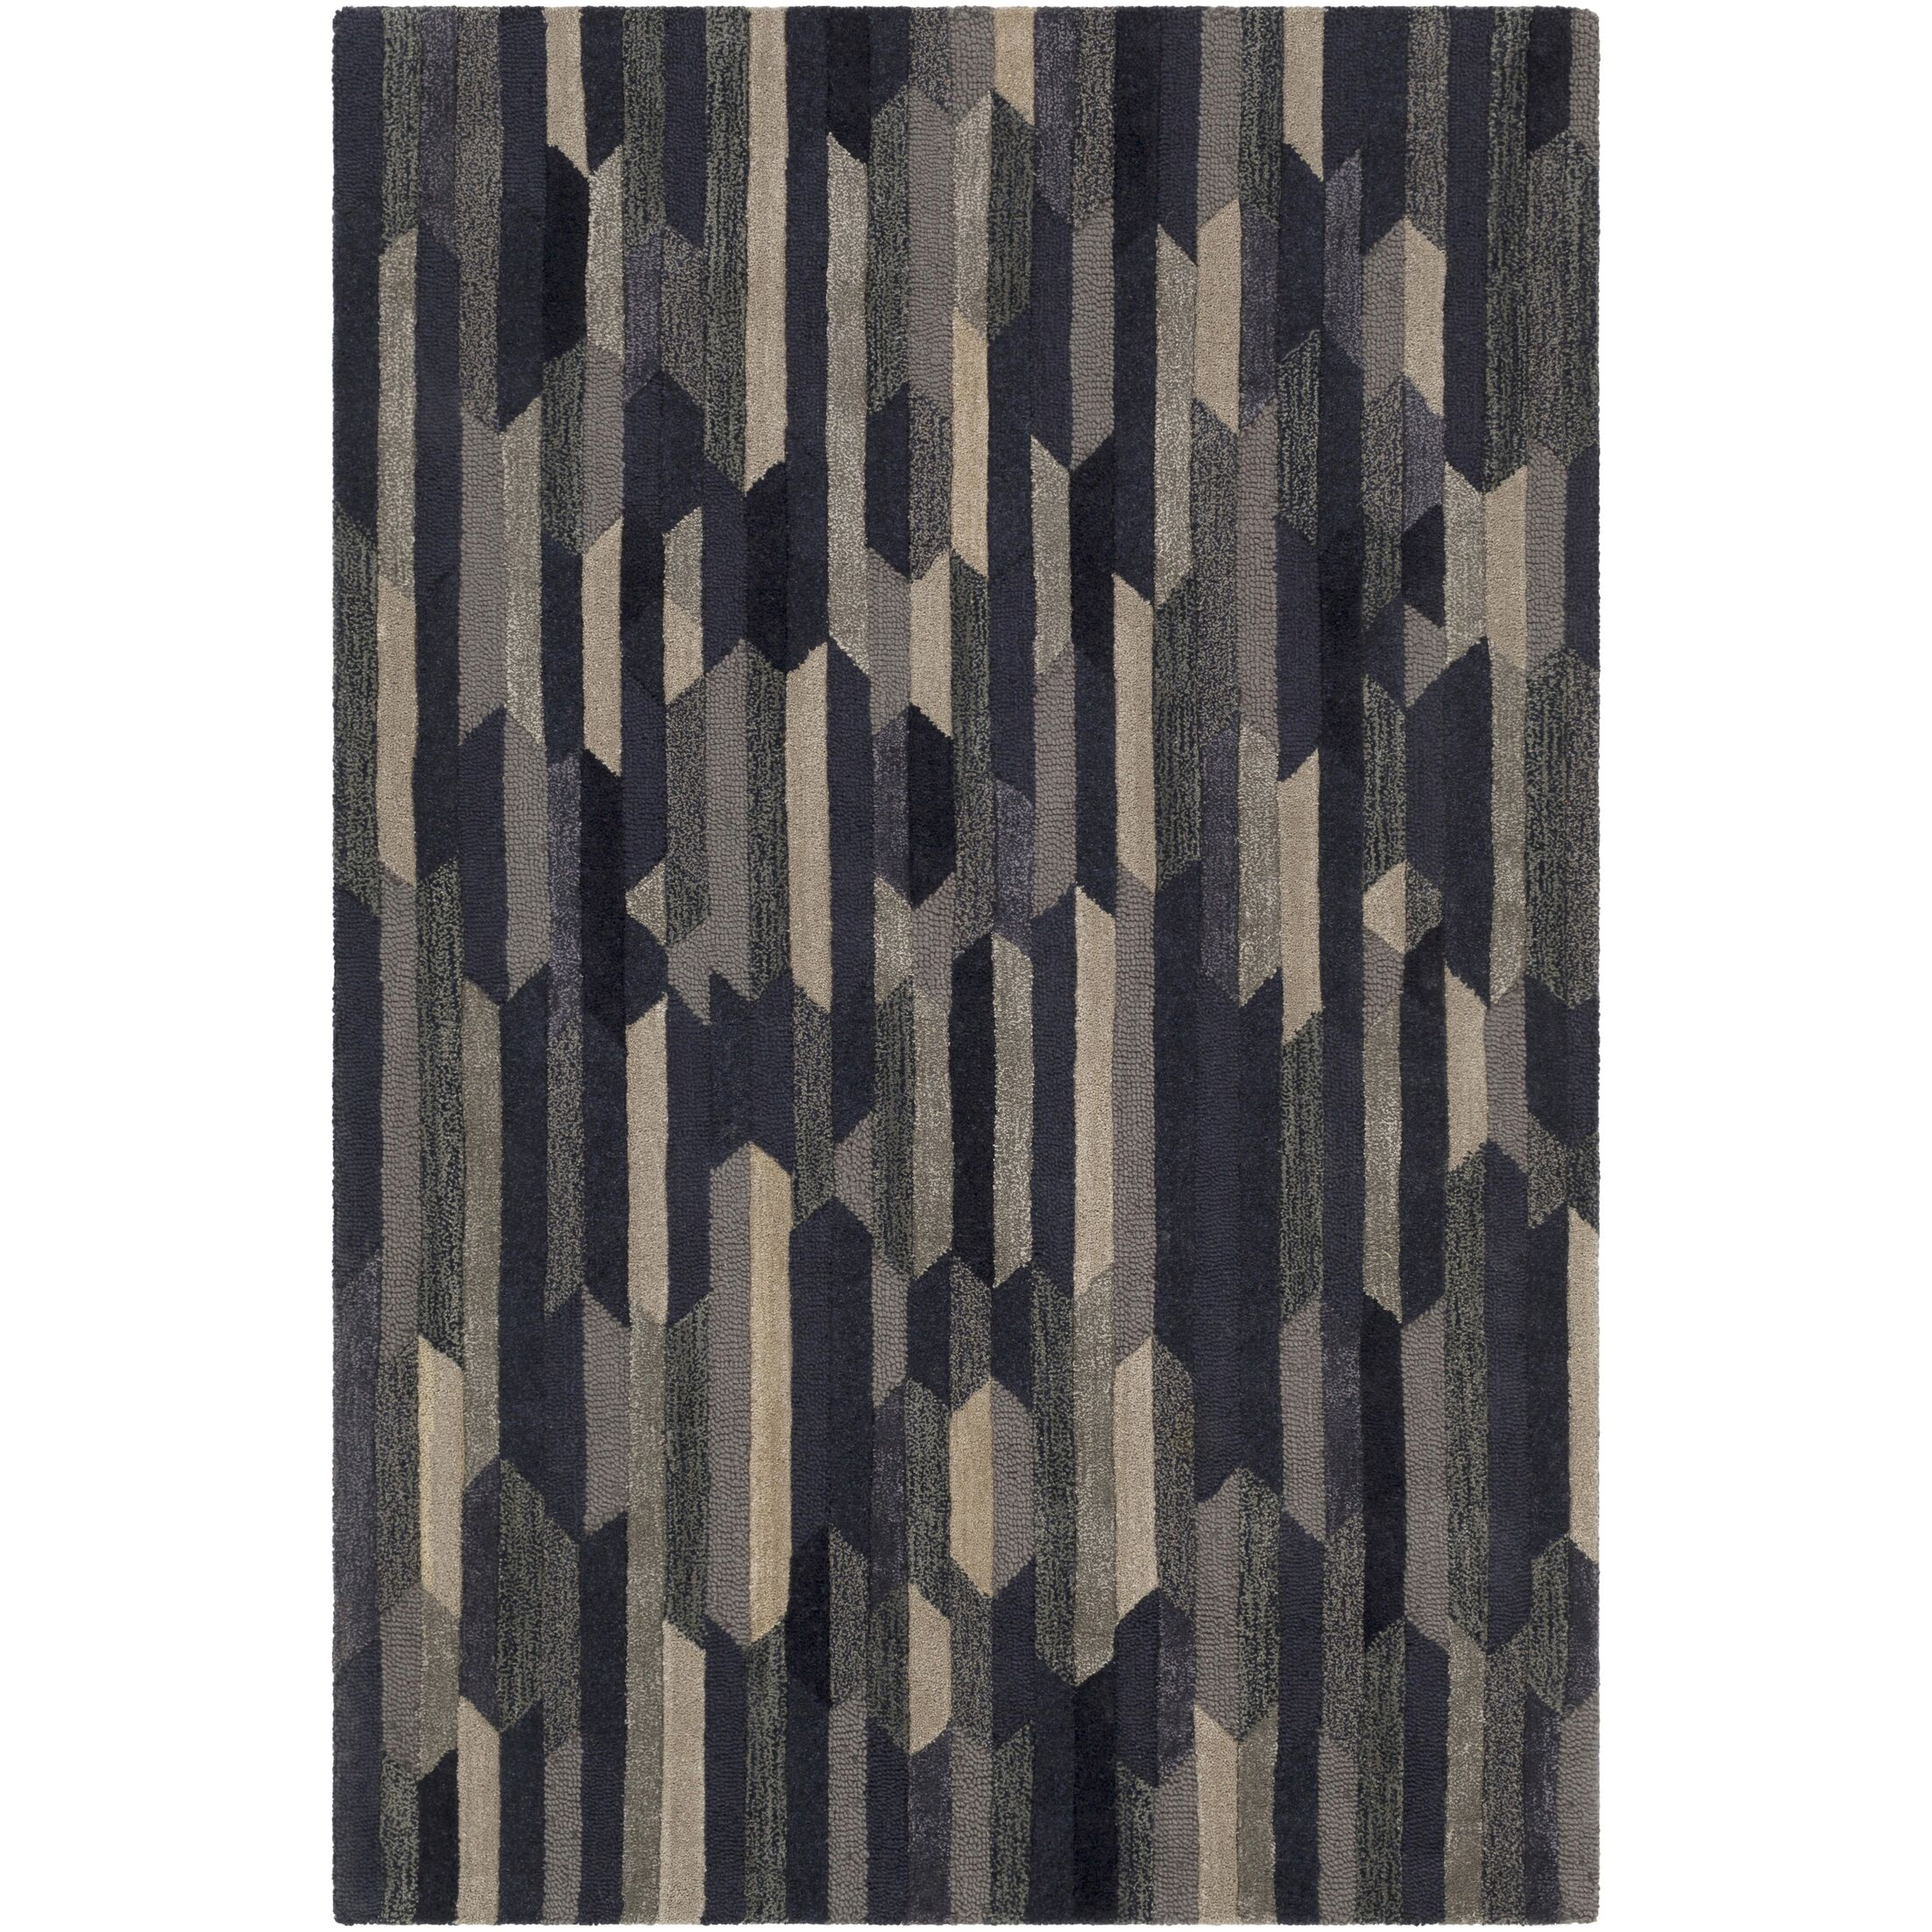 Borel Hand-Tufted Navy/Tan Area Rug Rug Size: Rectangle 9' x 13'